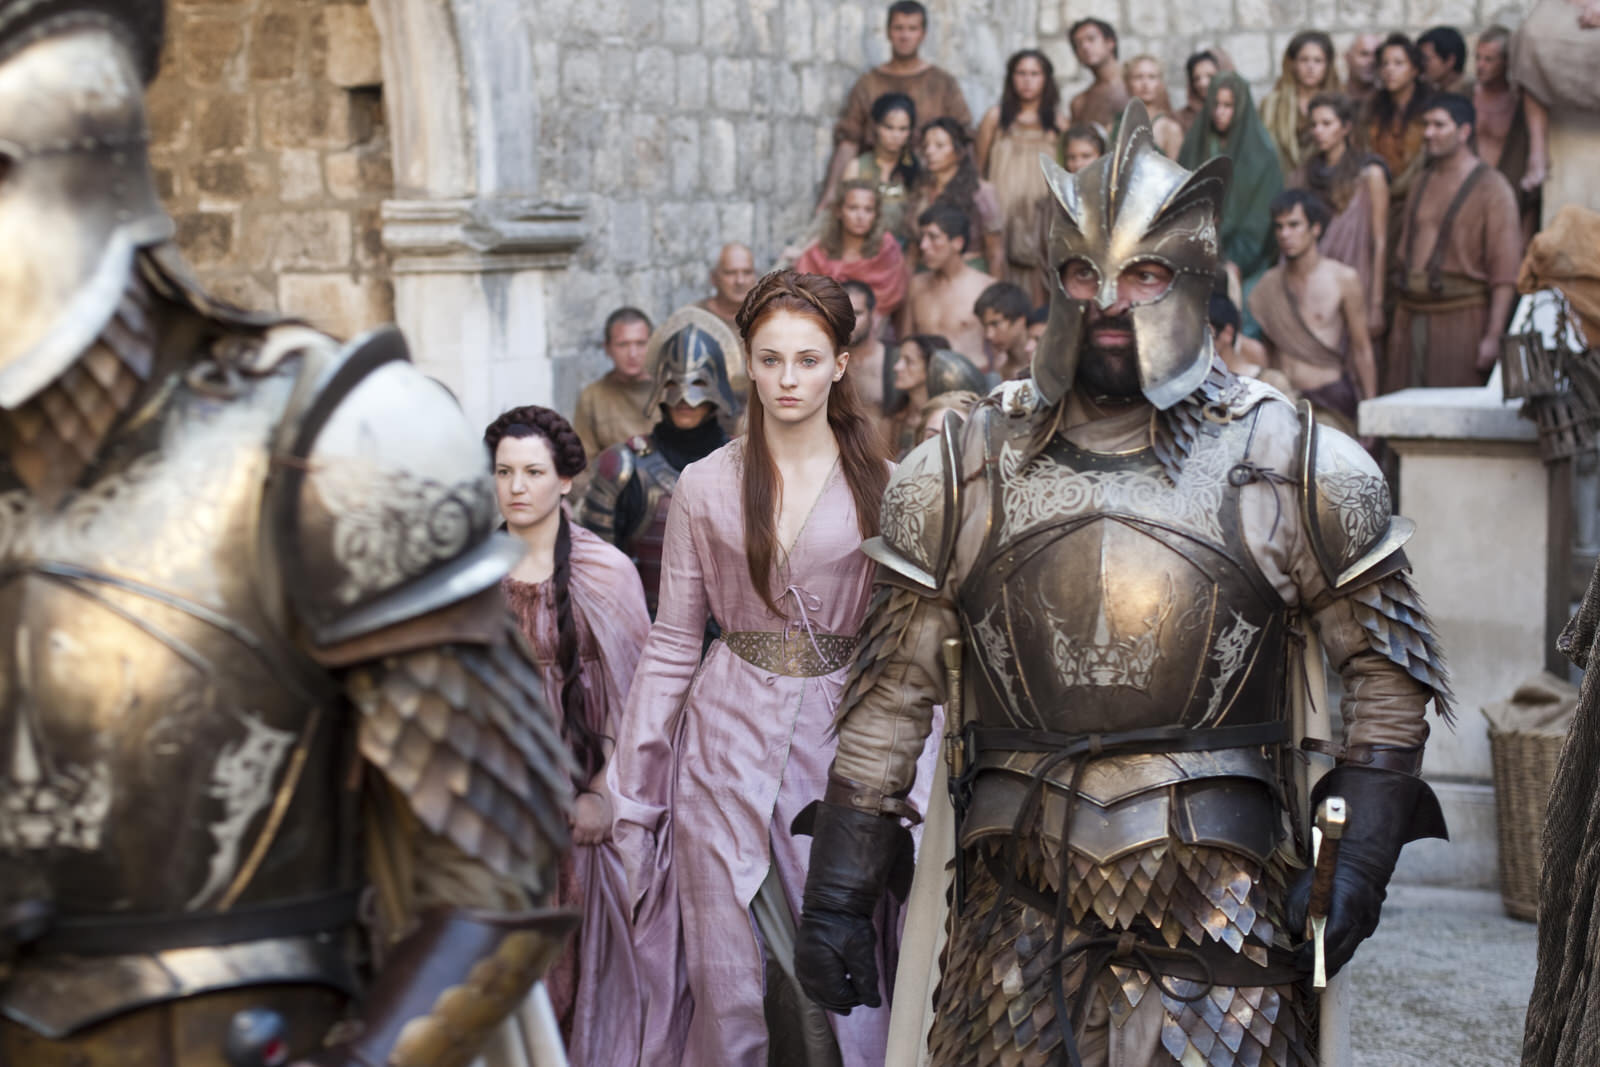 Sansa Stark is escorted through the streets of Dubrovnik